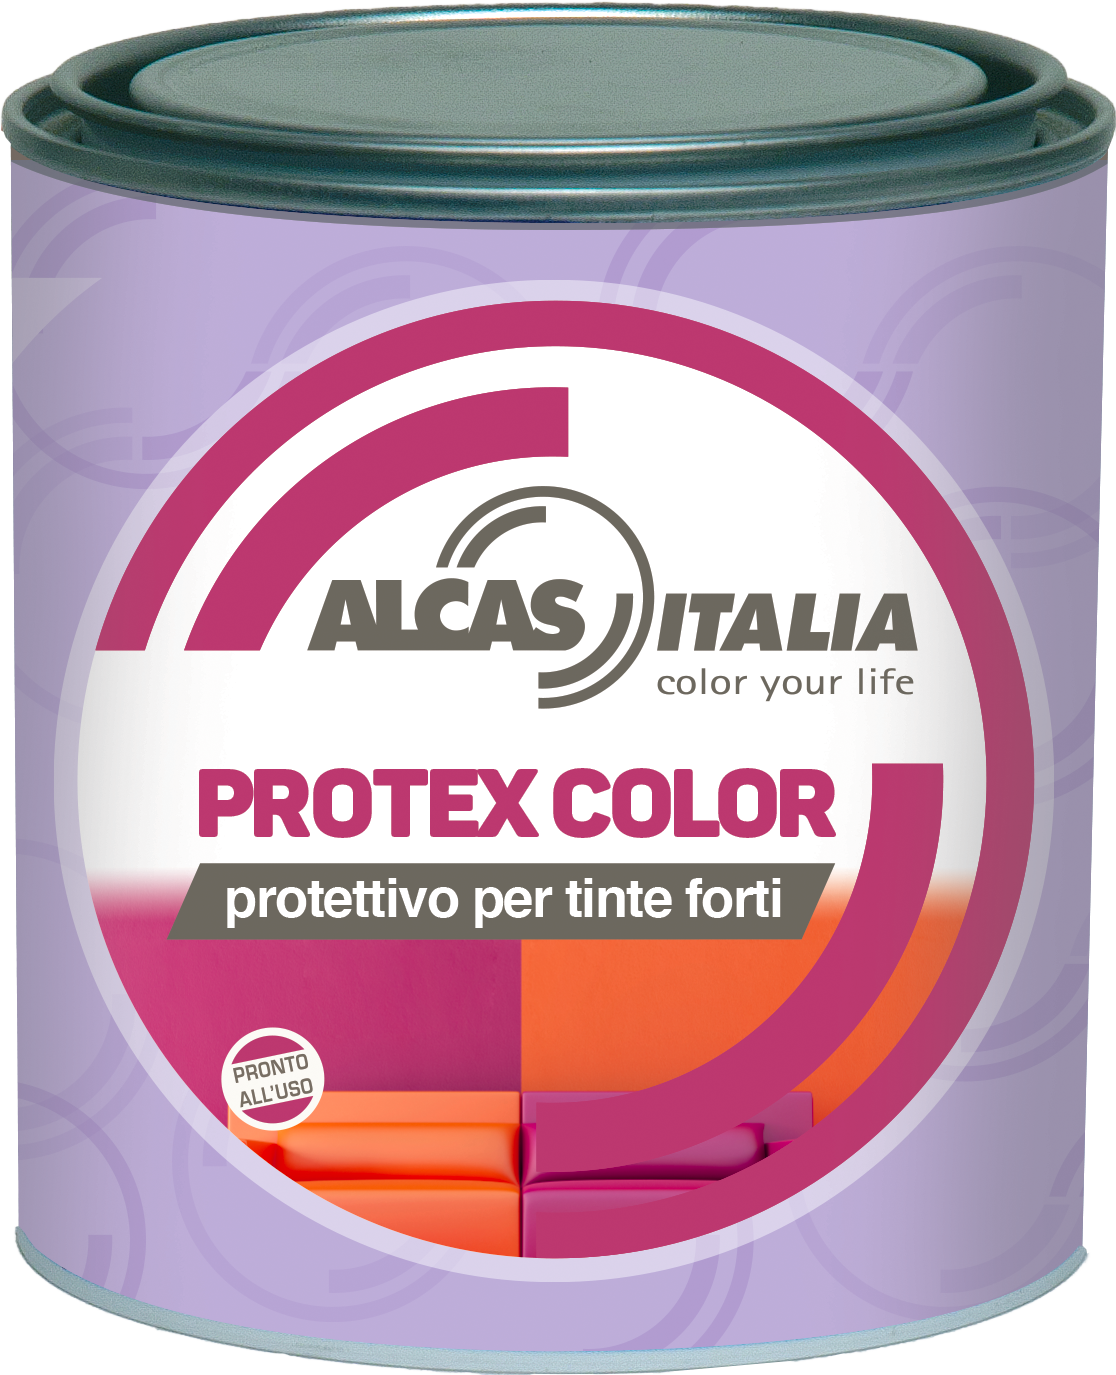 Protexcolor